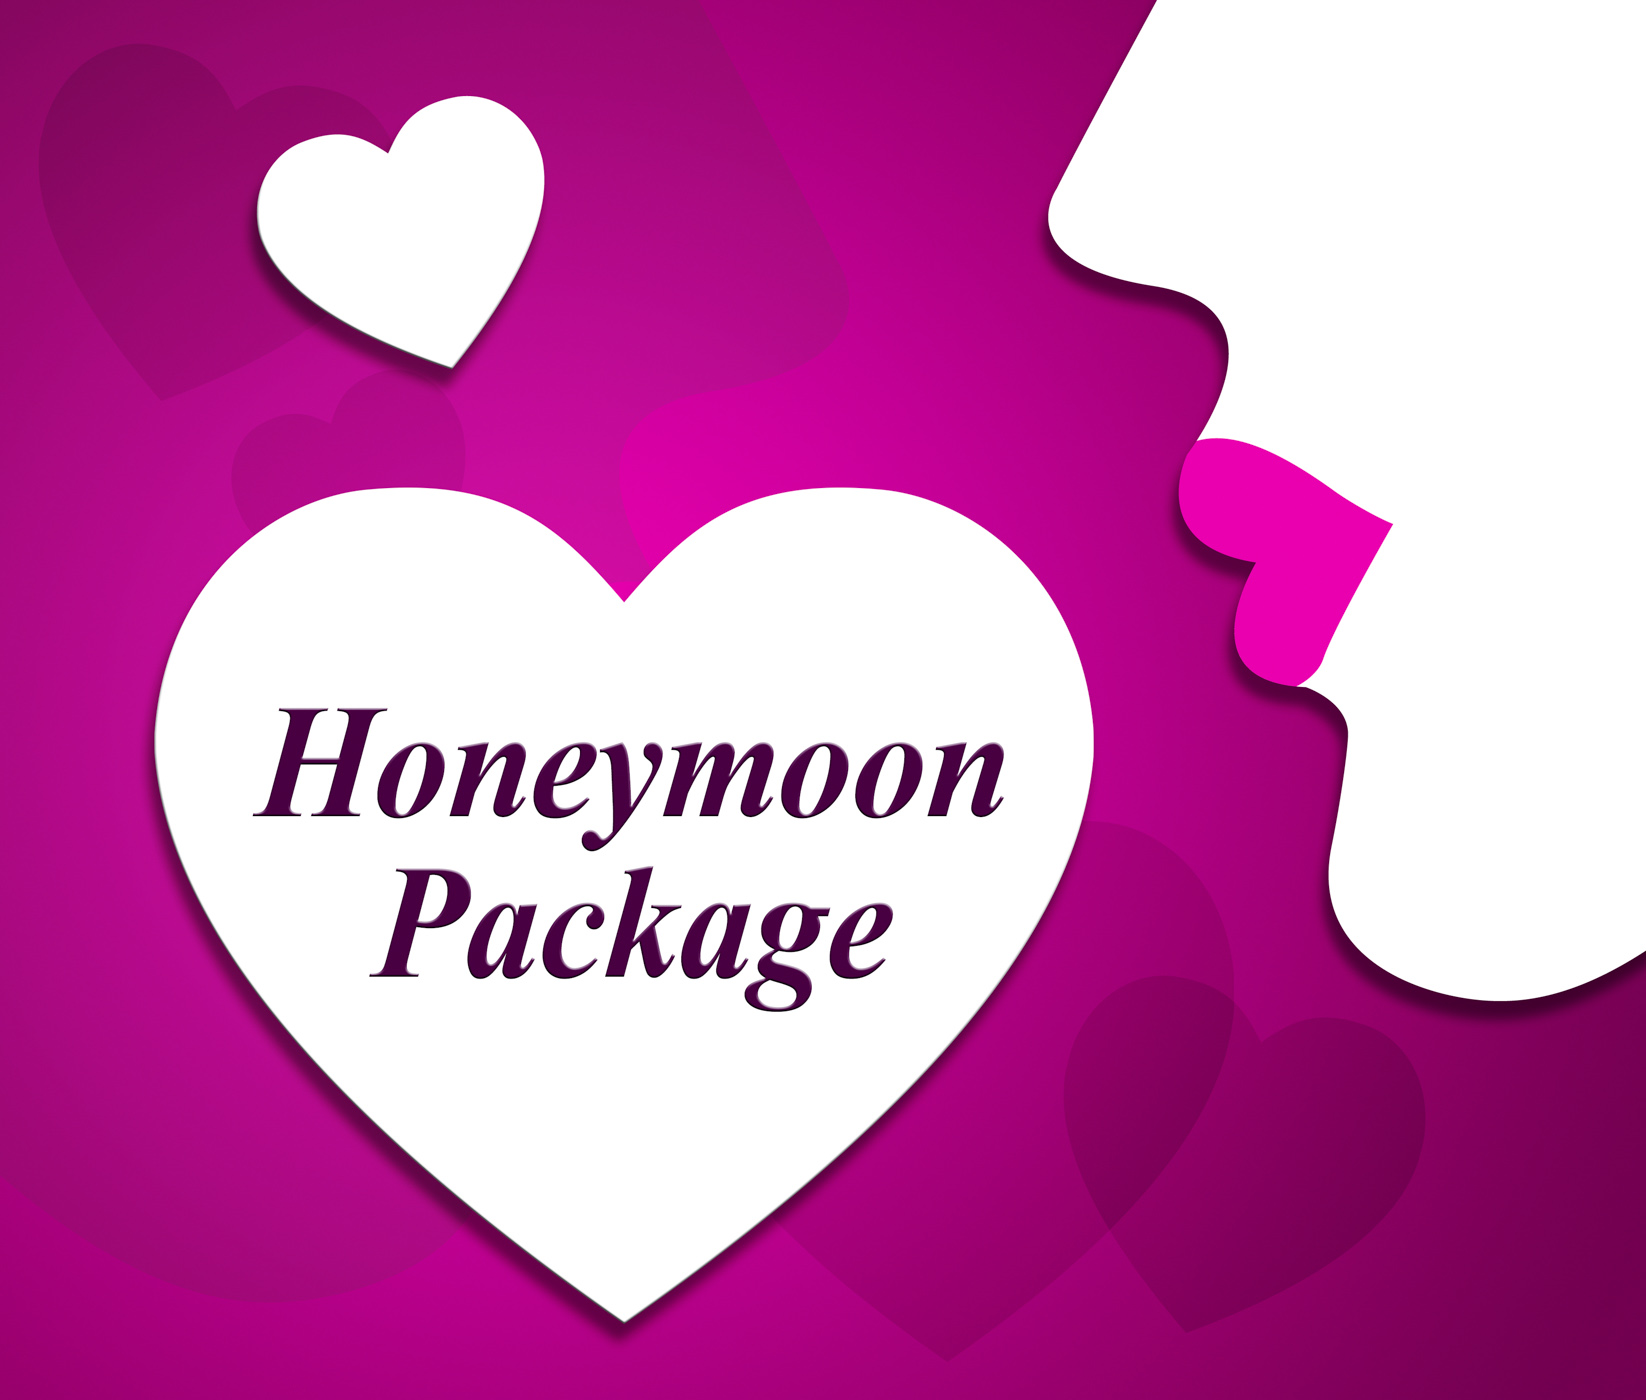 Honeymoon Package Represents All Inclusive And Destinations, Allinclusive, Organized, Vacationing, Vacational, HQ Photo